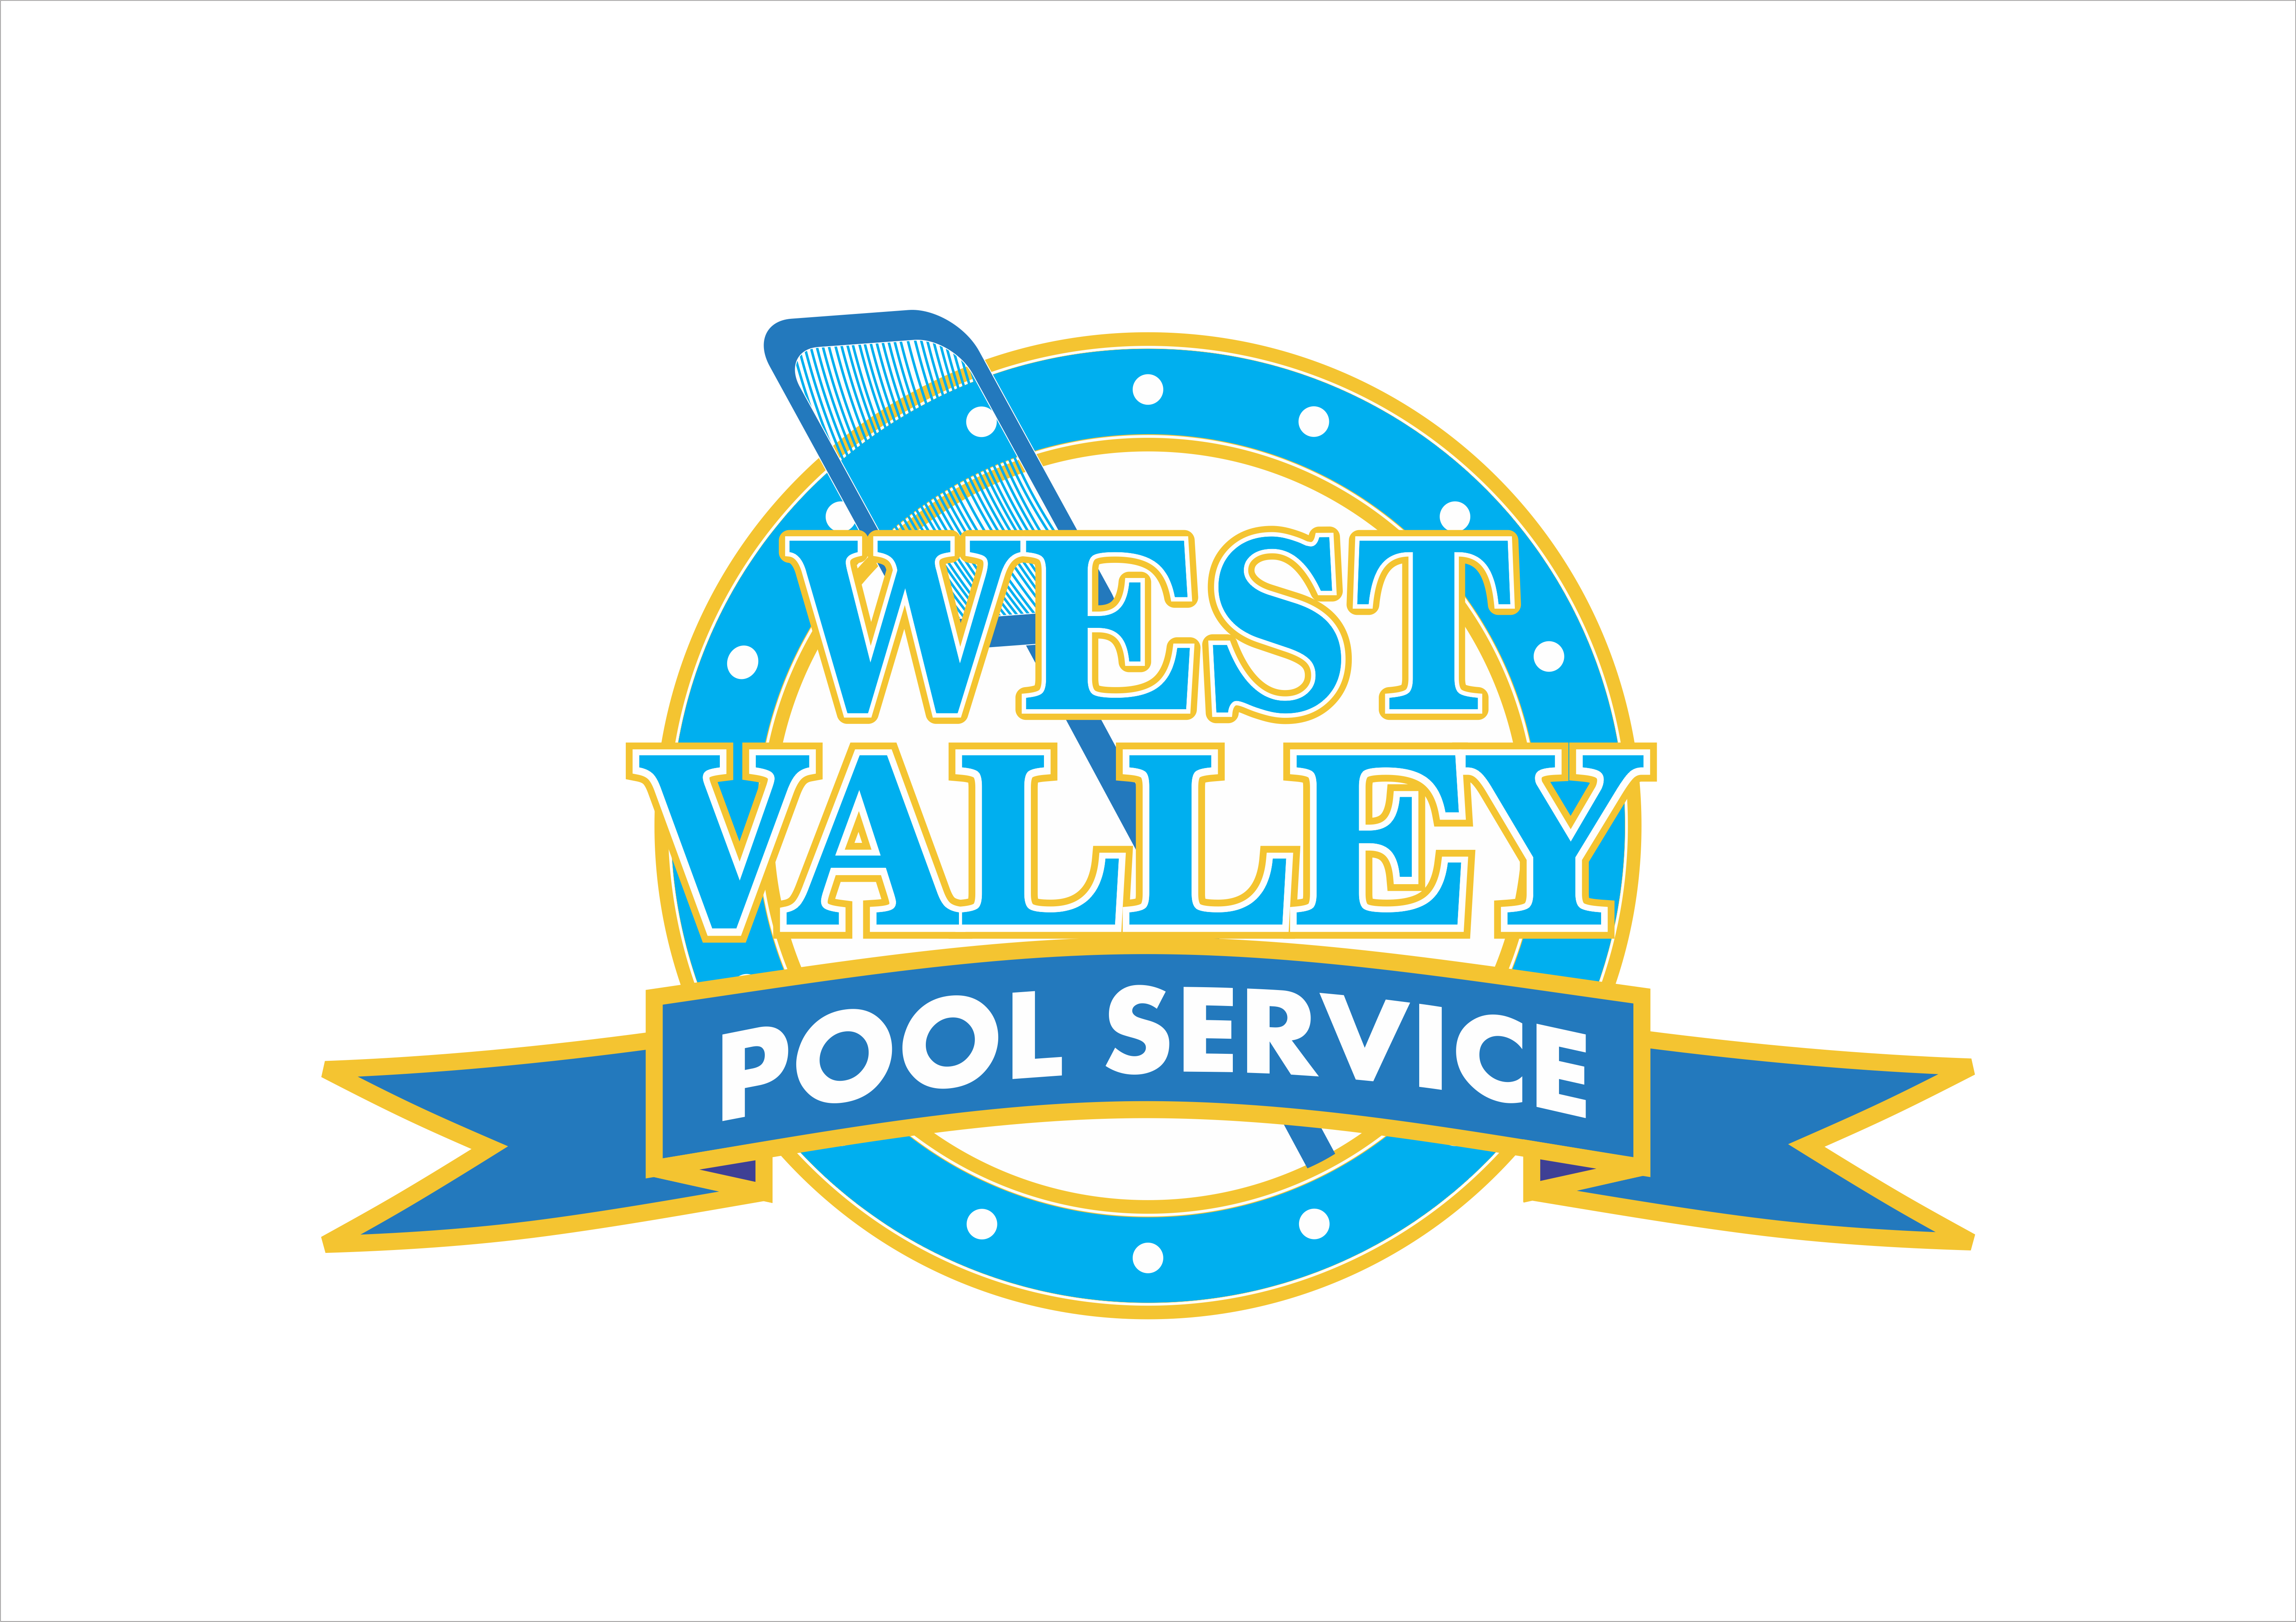 Logo Design by snow - Entry No. 59 in the Logo Design Contest Clever Logo Design for West Valley Pool Service.